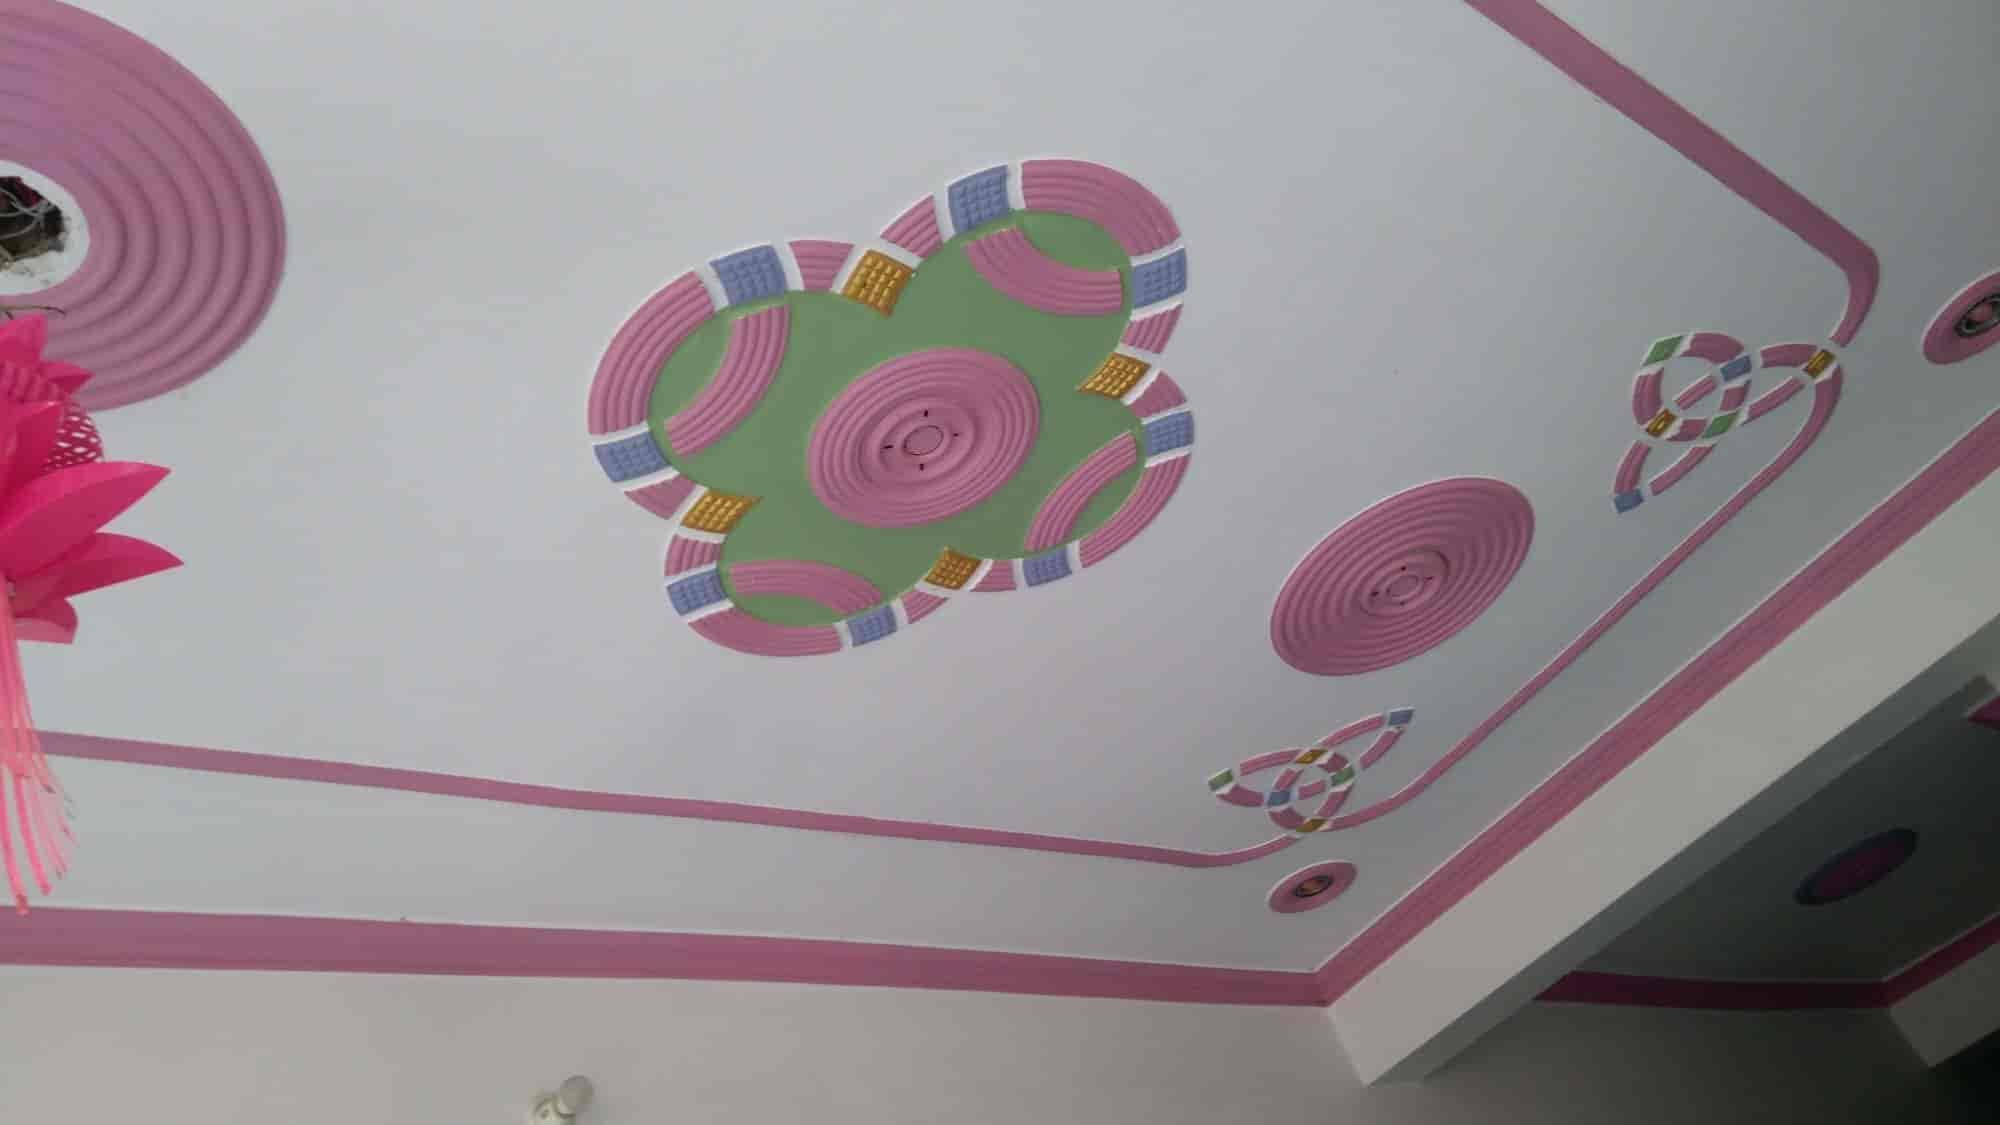 House Painting Pop And Wall Putty Work Kalyanpur Lucknow House Painters In Lucknow Justdial